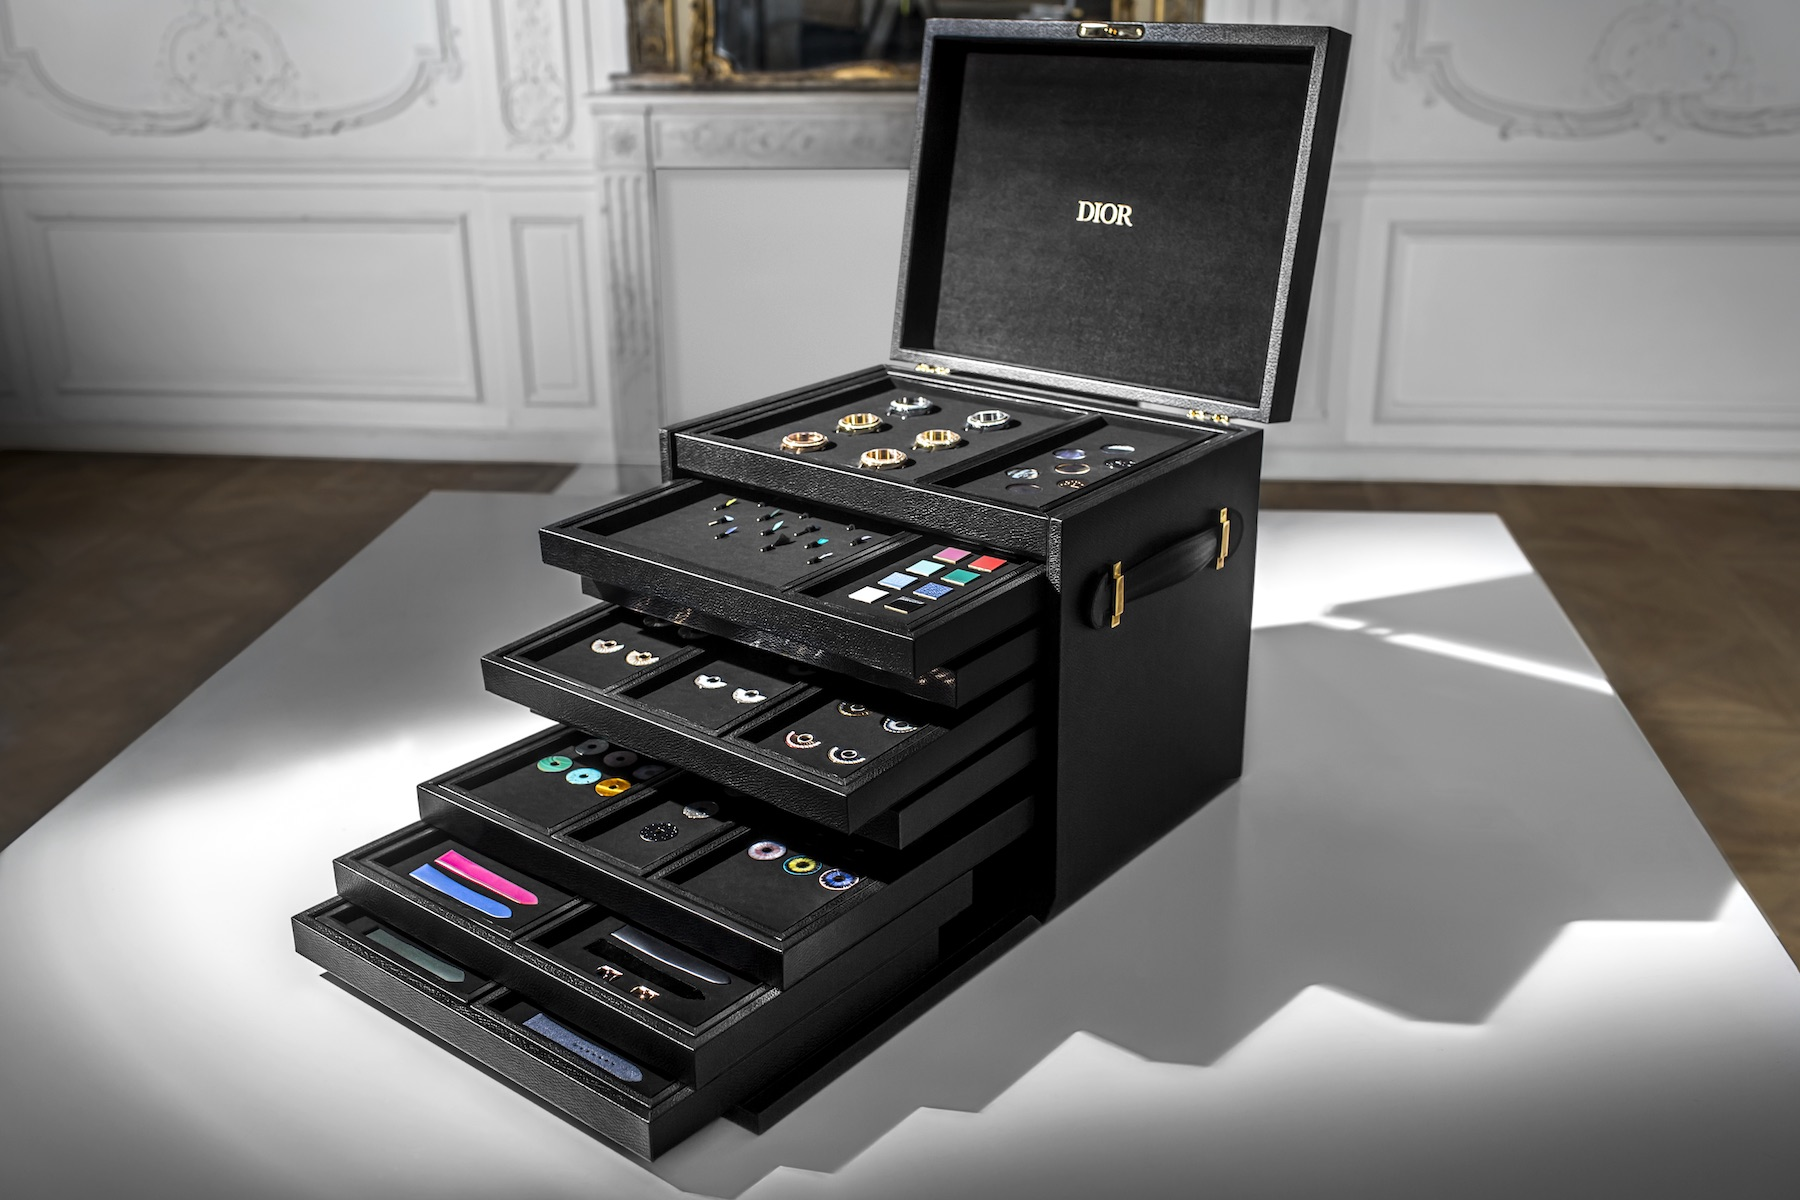 """Dior's """"created-to-measure"""" service for its Grand Bal timepiece has over 200 million possibilities"""